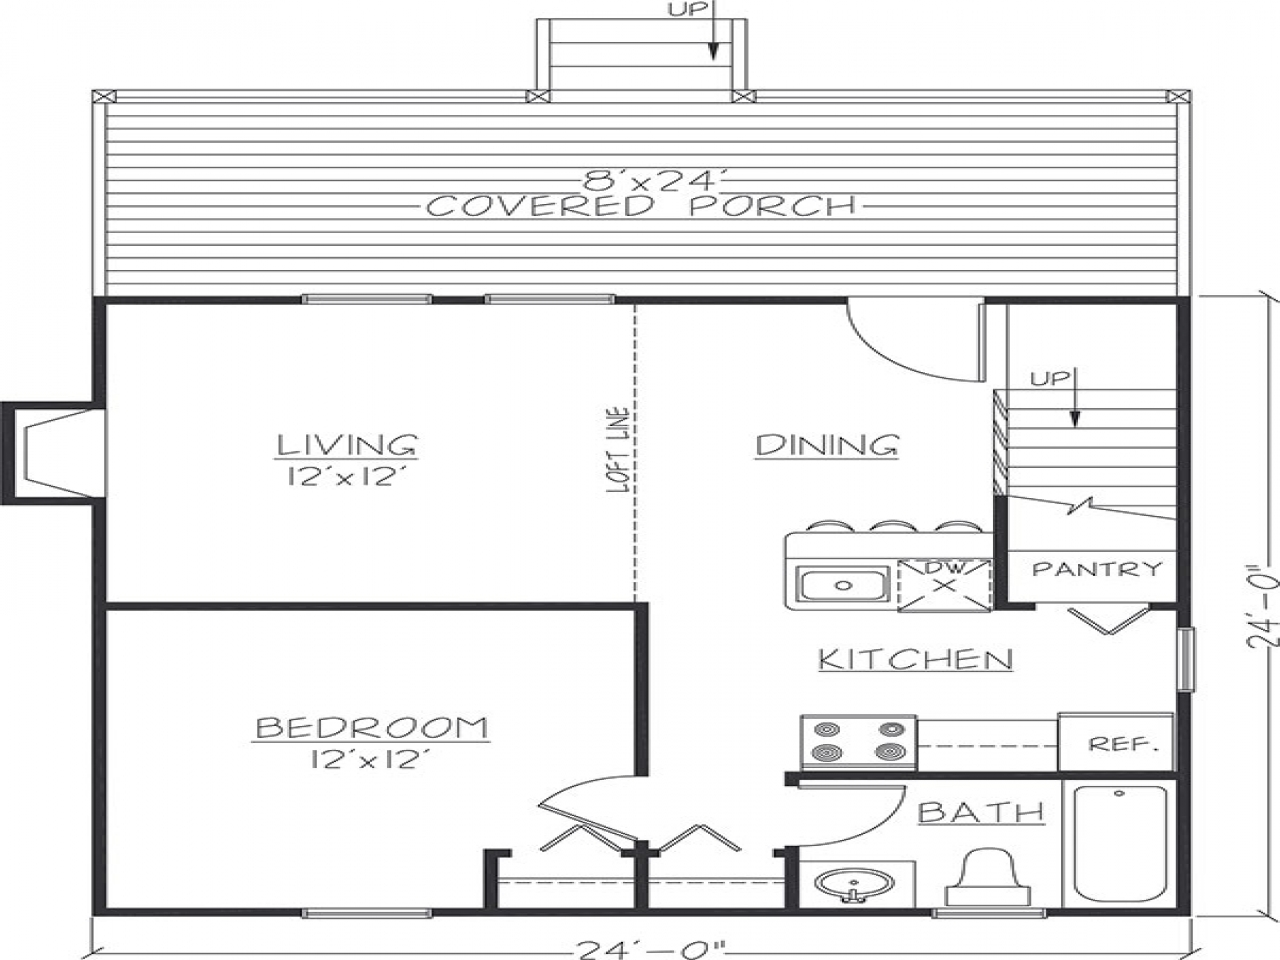 24x24 cabin floor plans with lofts 24 x 40 cabin plans for 24x24 cabin floor plans with loft